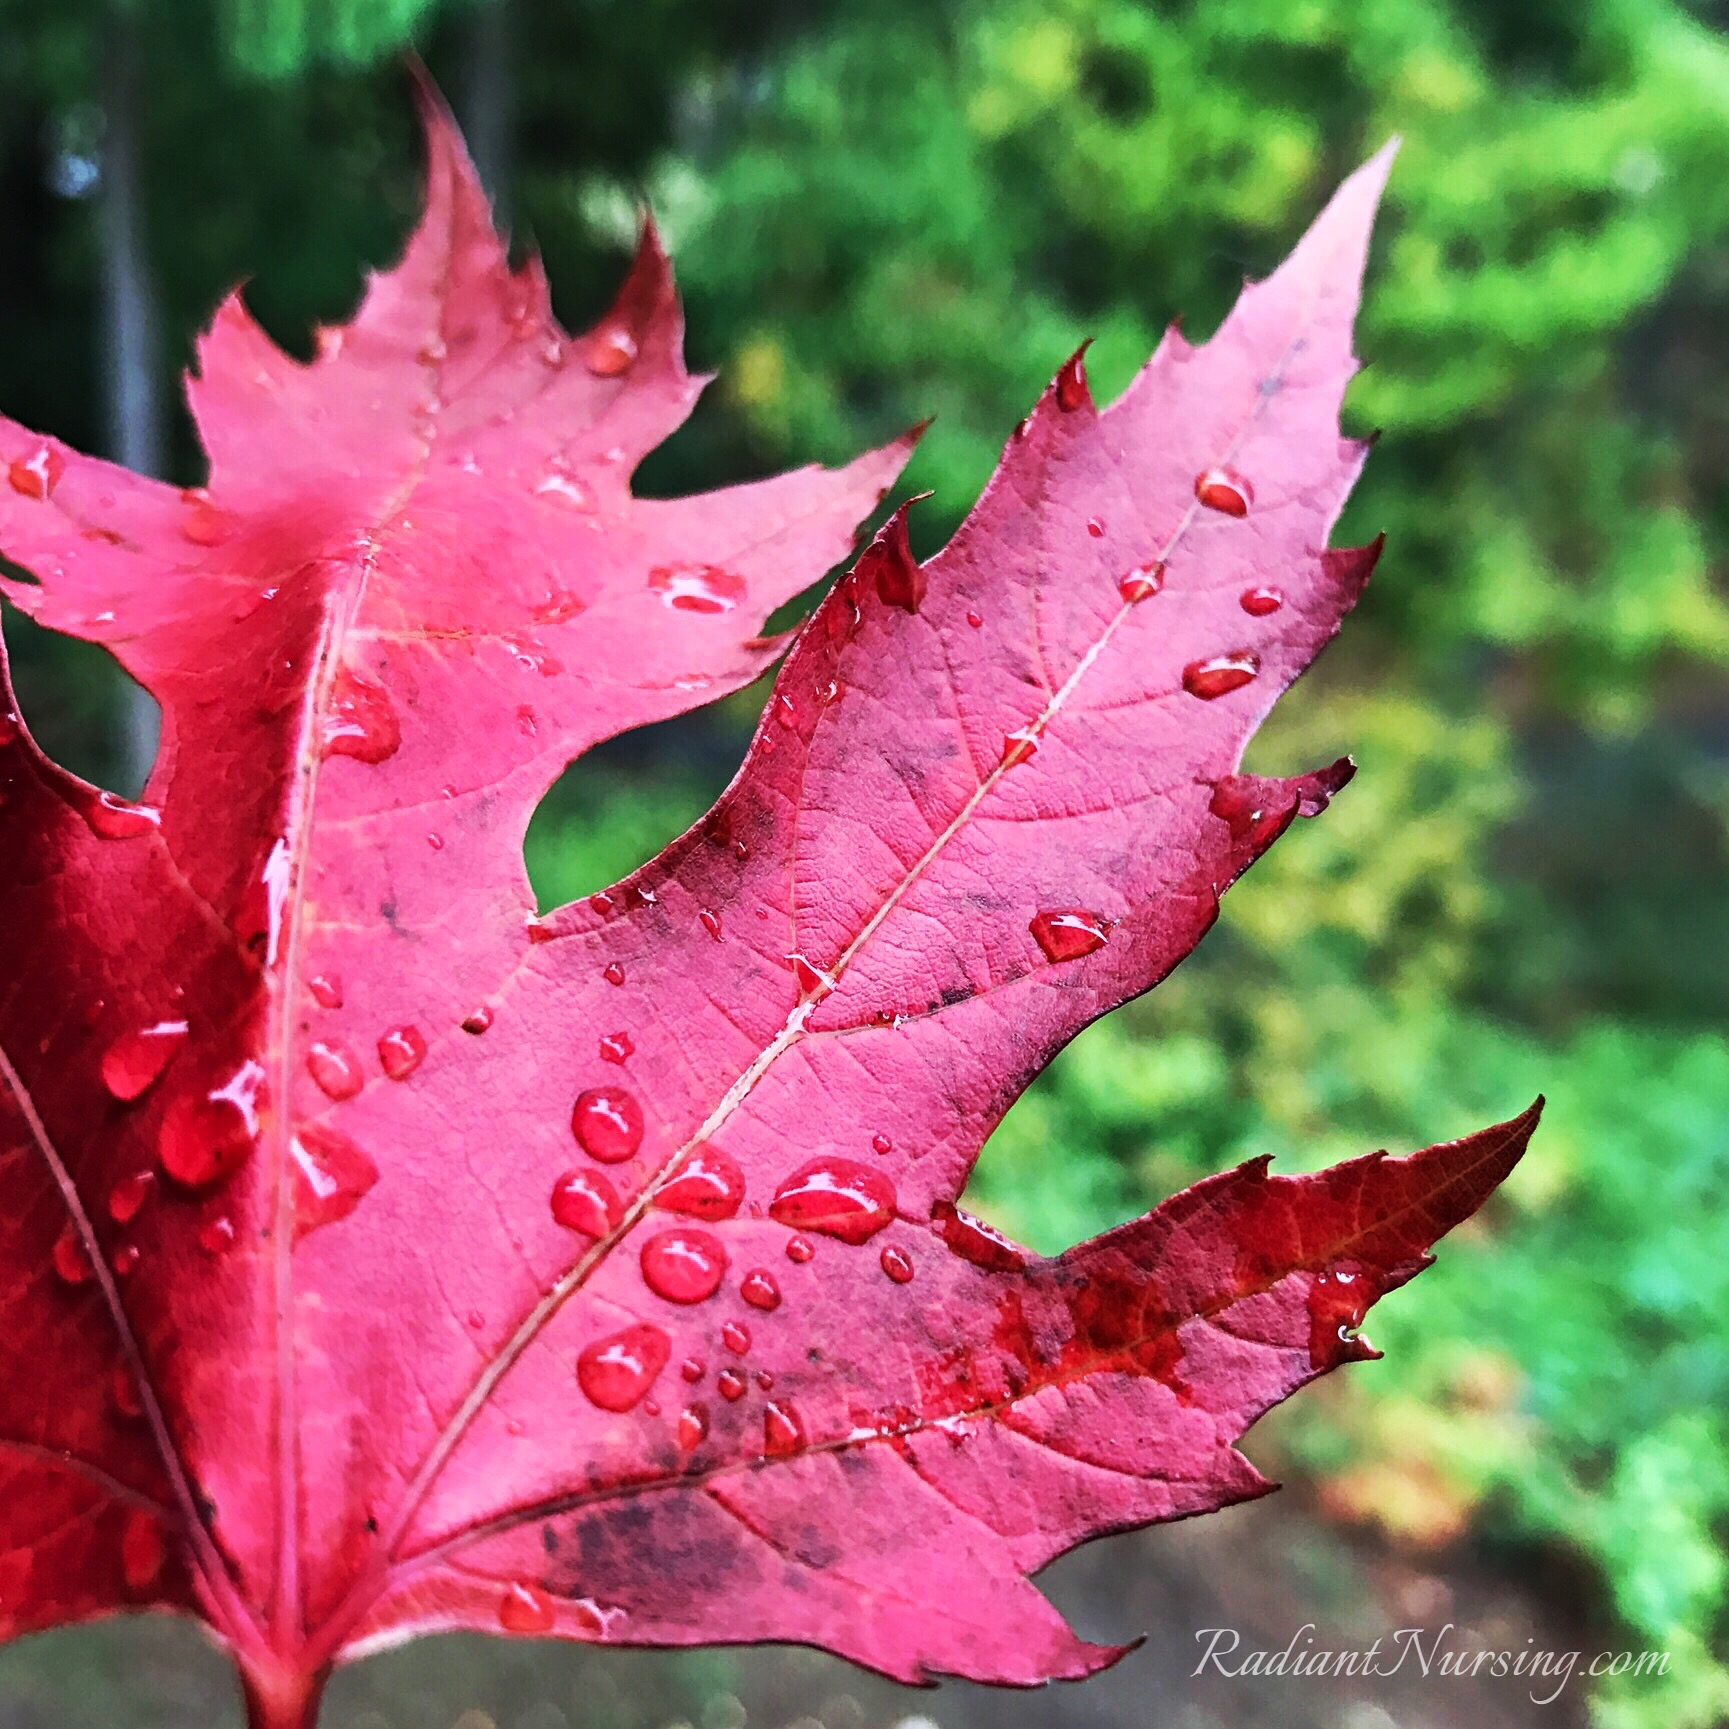 A first red leaf of this season of fall. Or do you call it autumn?